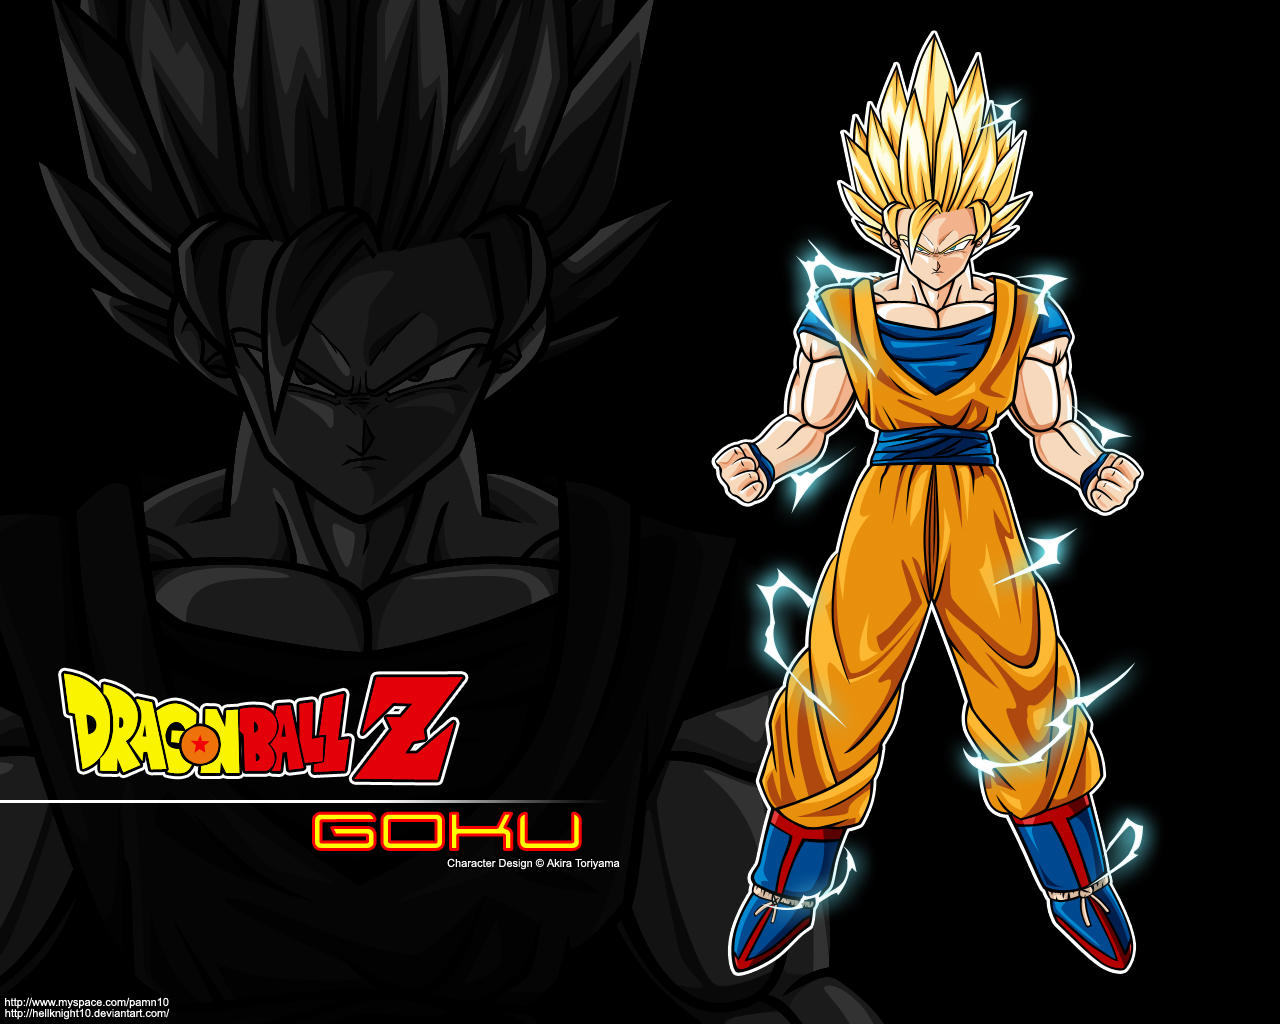 Super Saiyan 2 Goku Wallpaper By Hellknight10 On DeviantArt